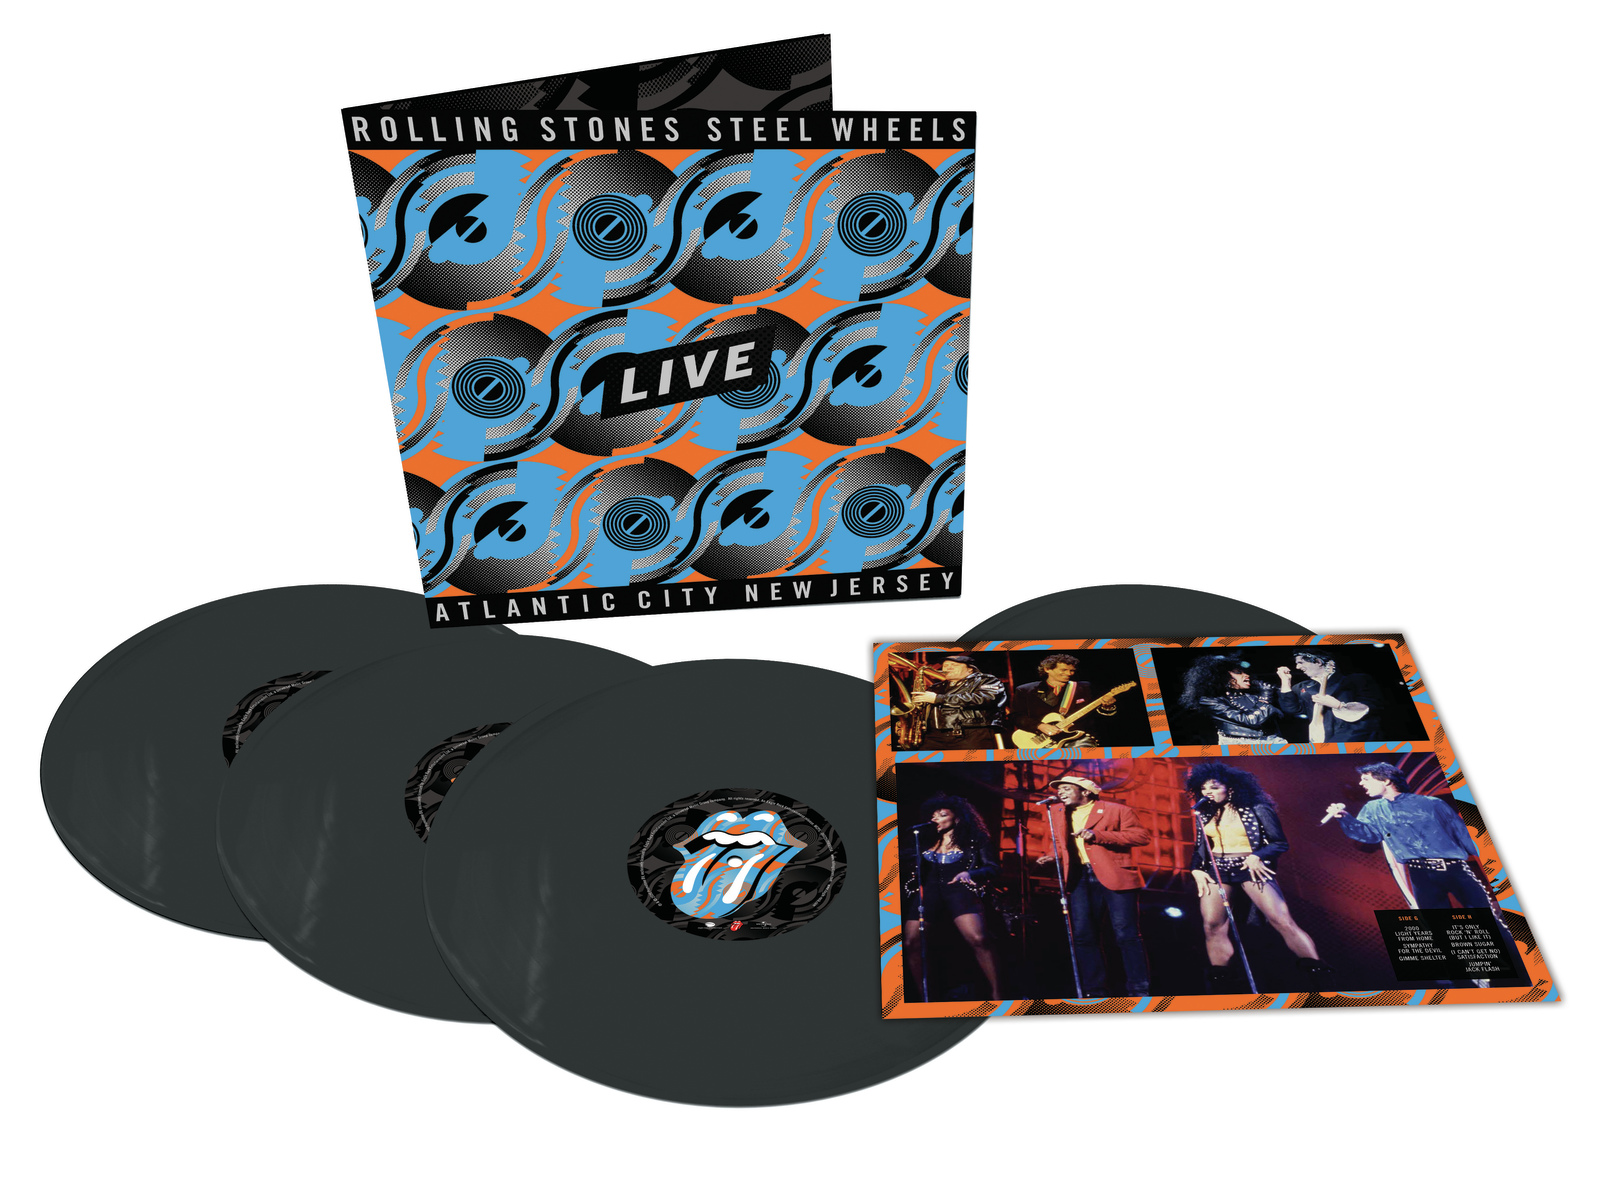 Steel Wheels Live by The Rolling Stones image